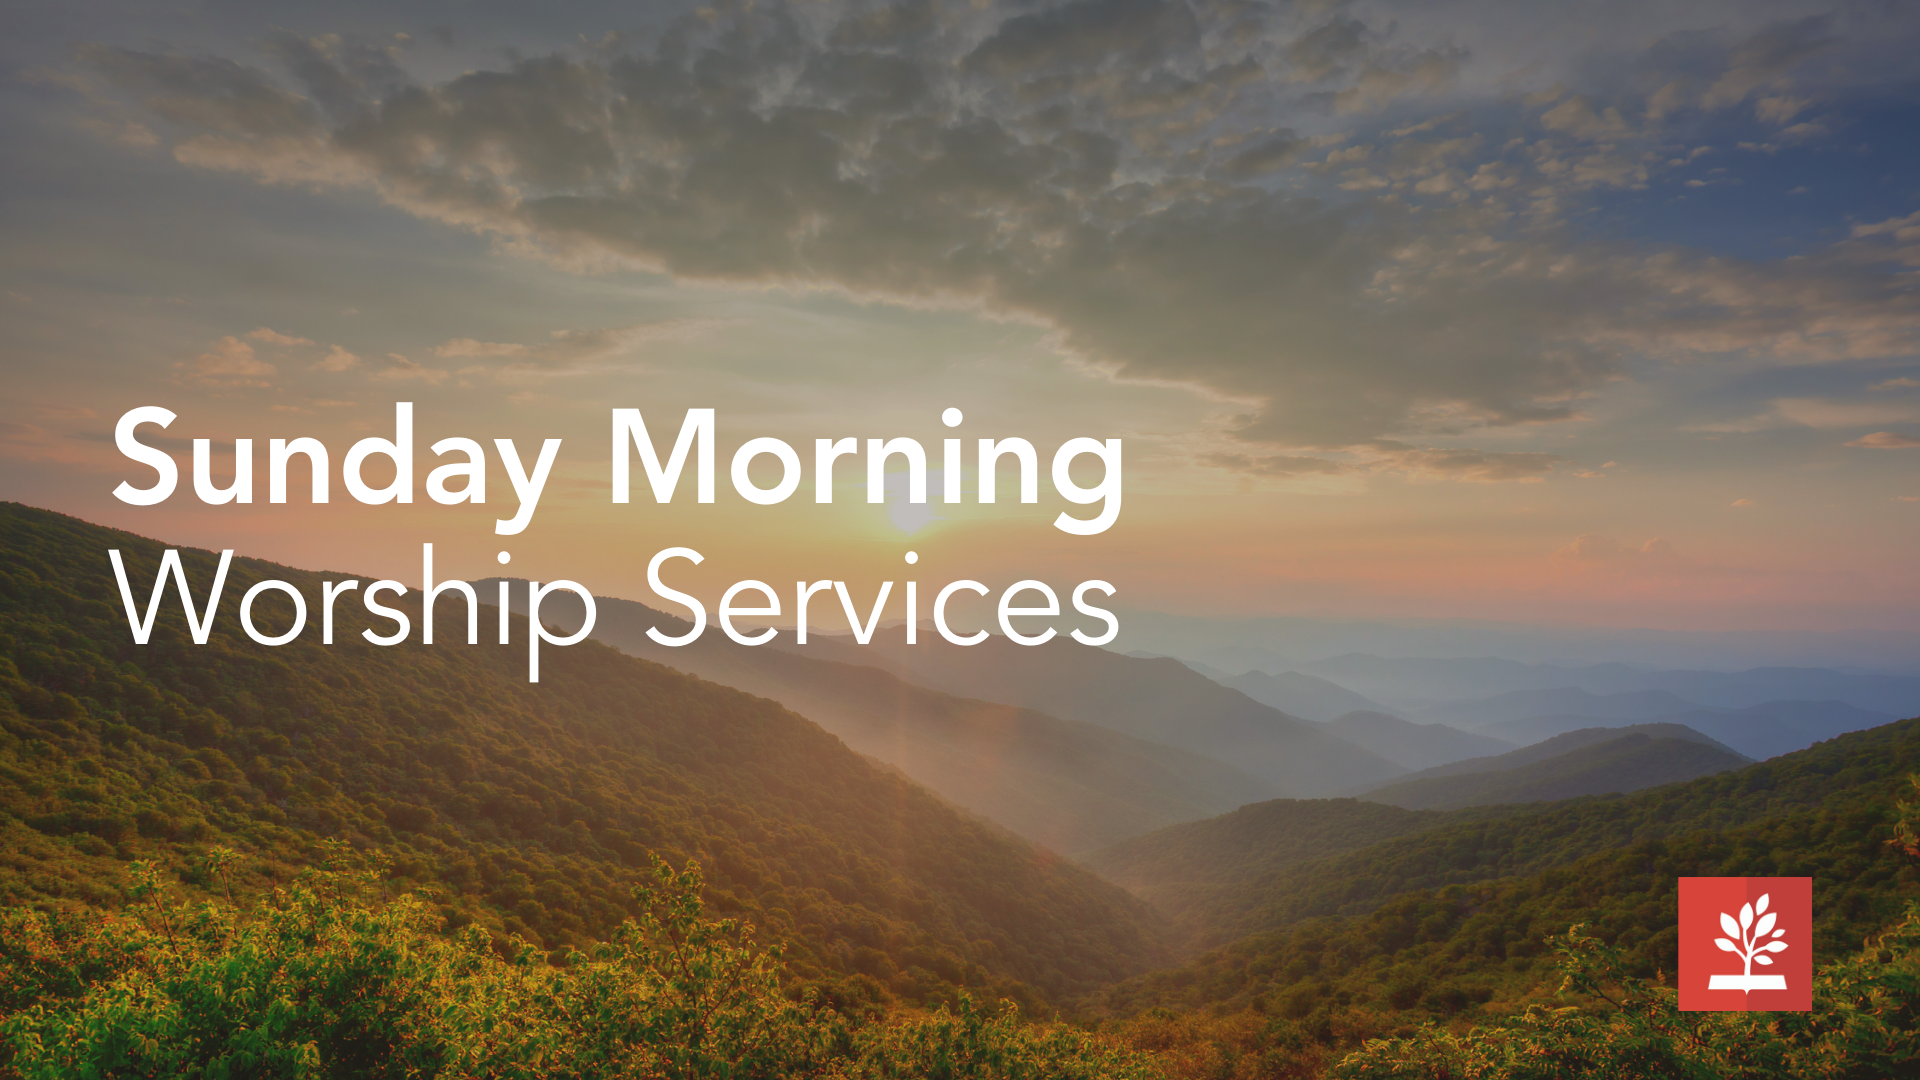 Sunday Morning Worship Services image